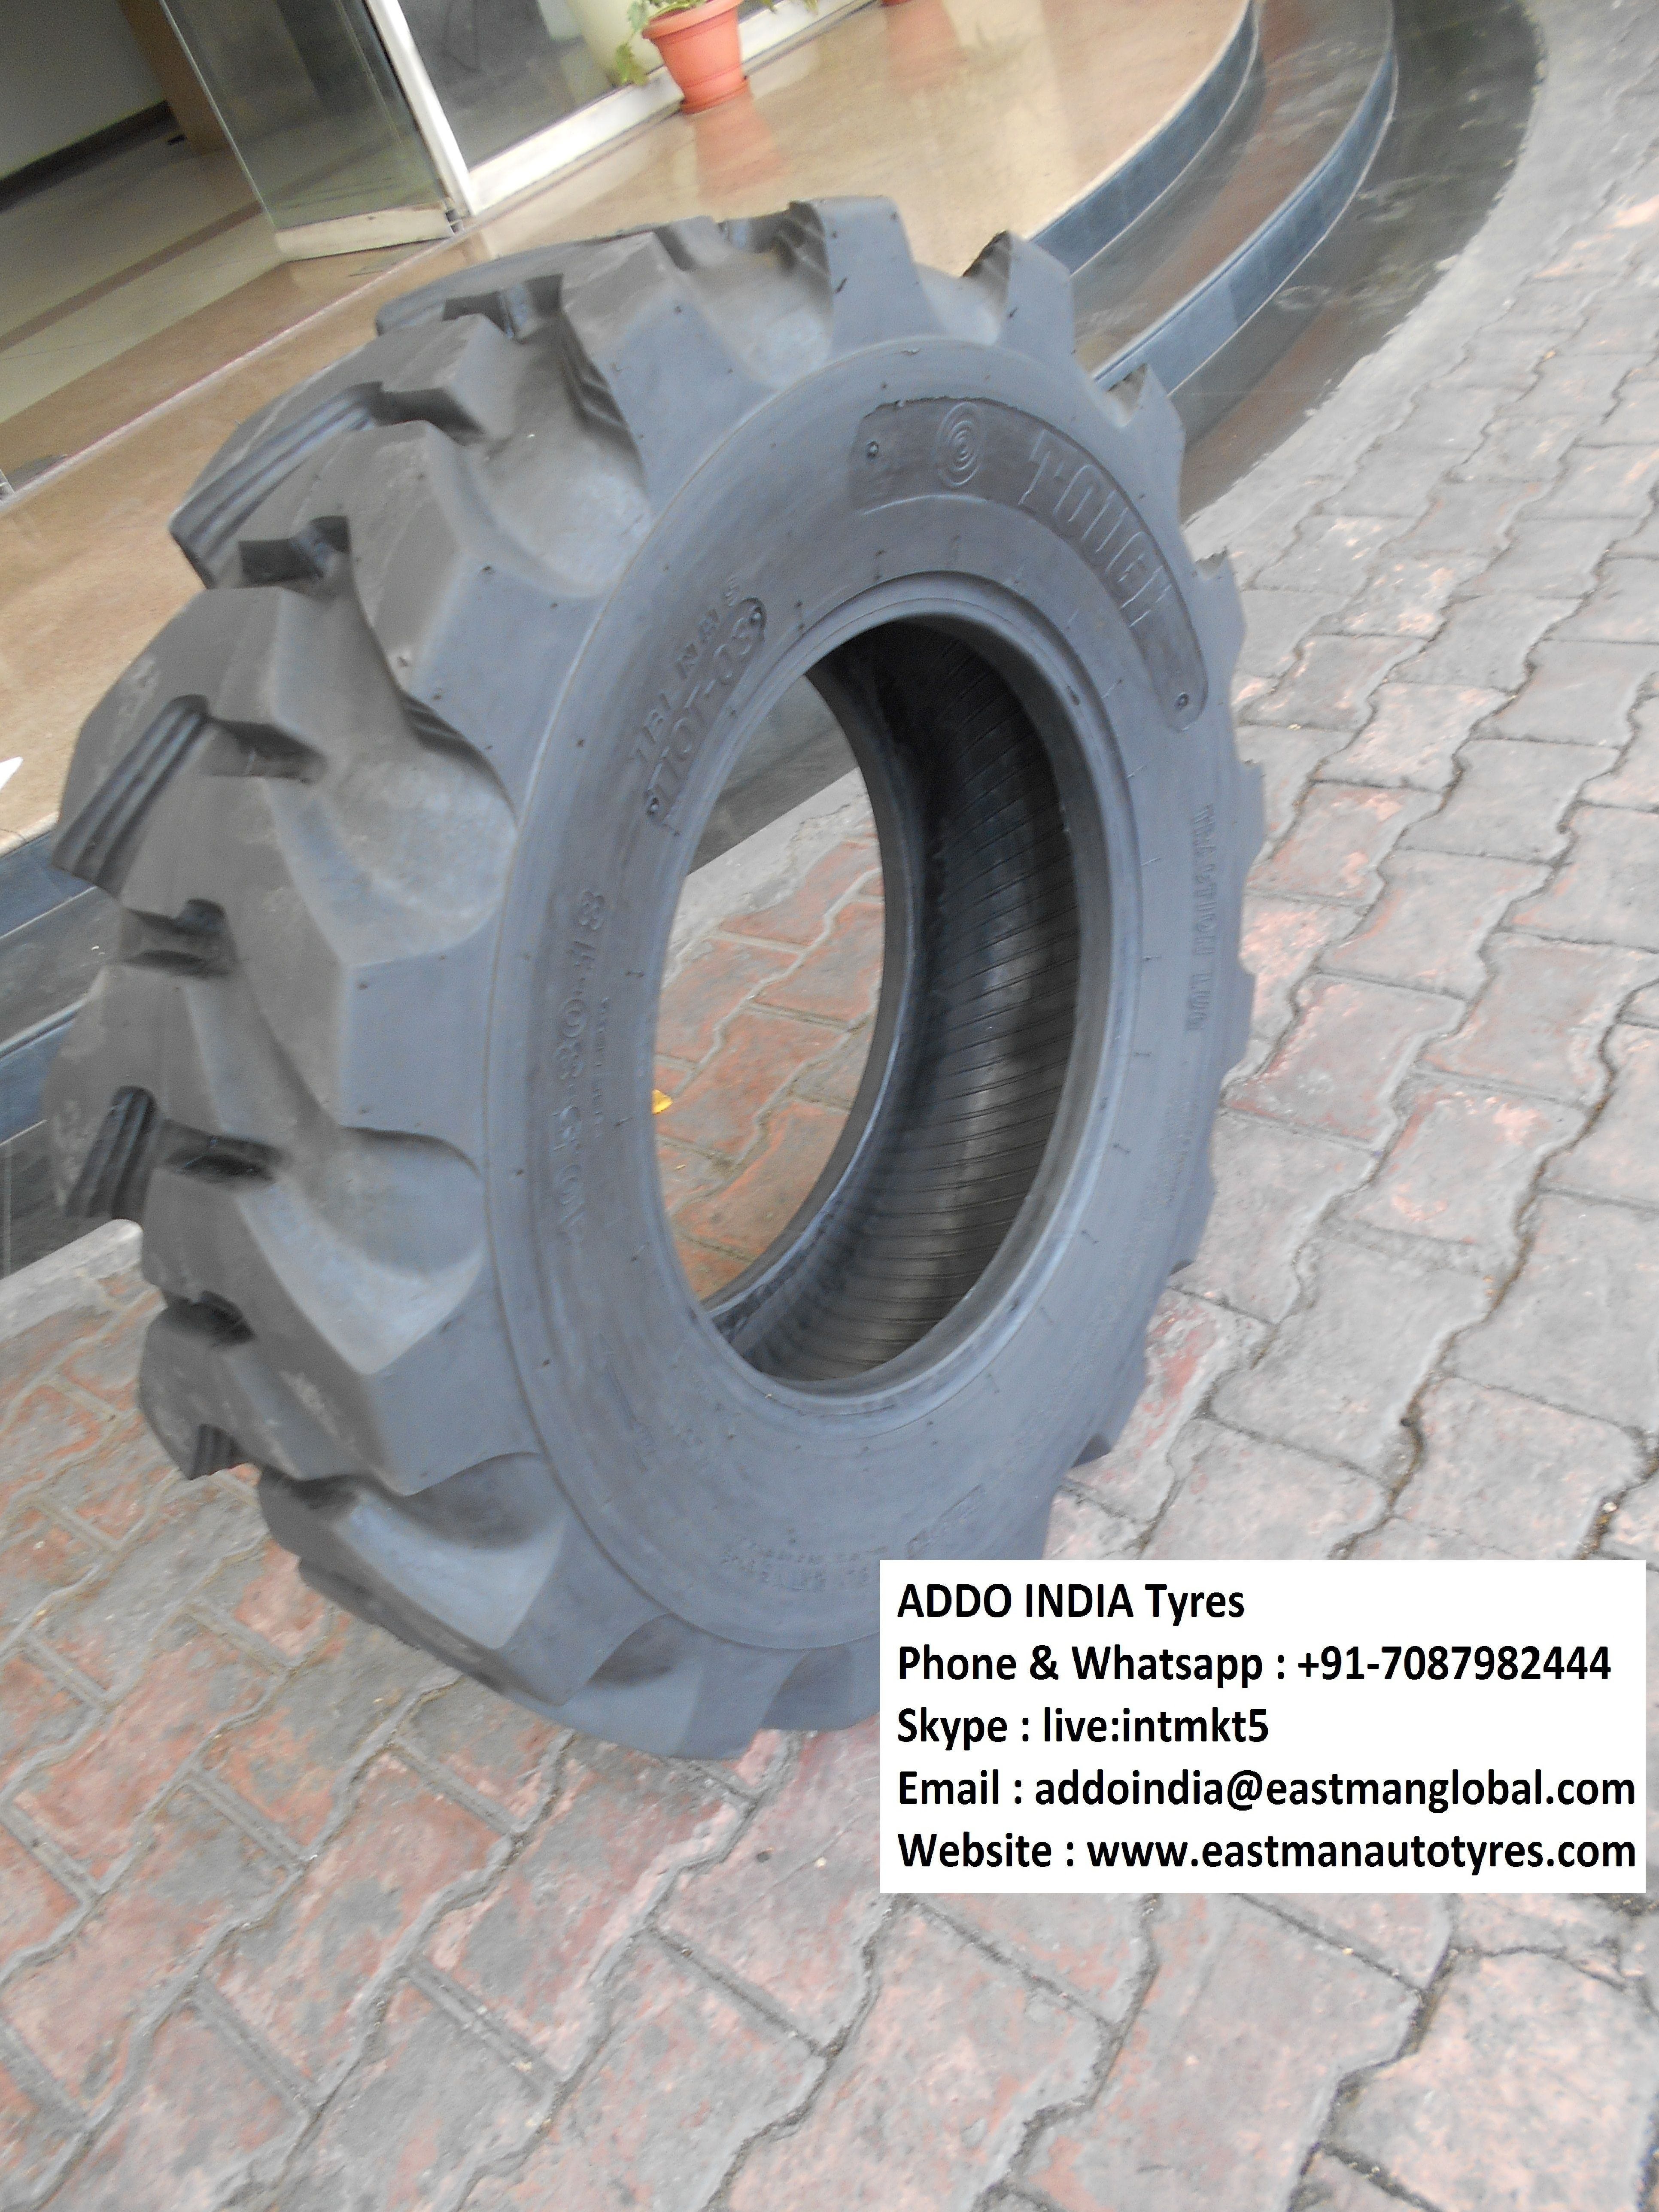 Addo India Tyres R4 Pattern Truck Tyres Truck Lights Tire